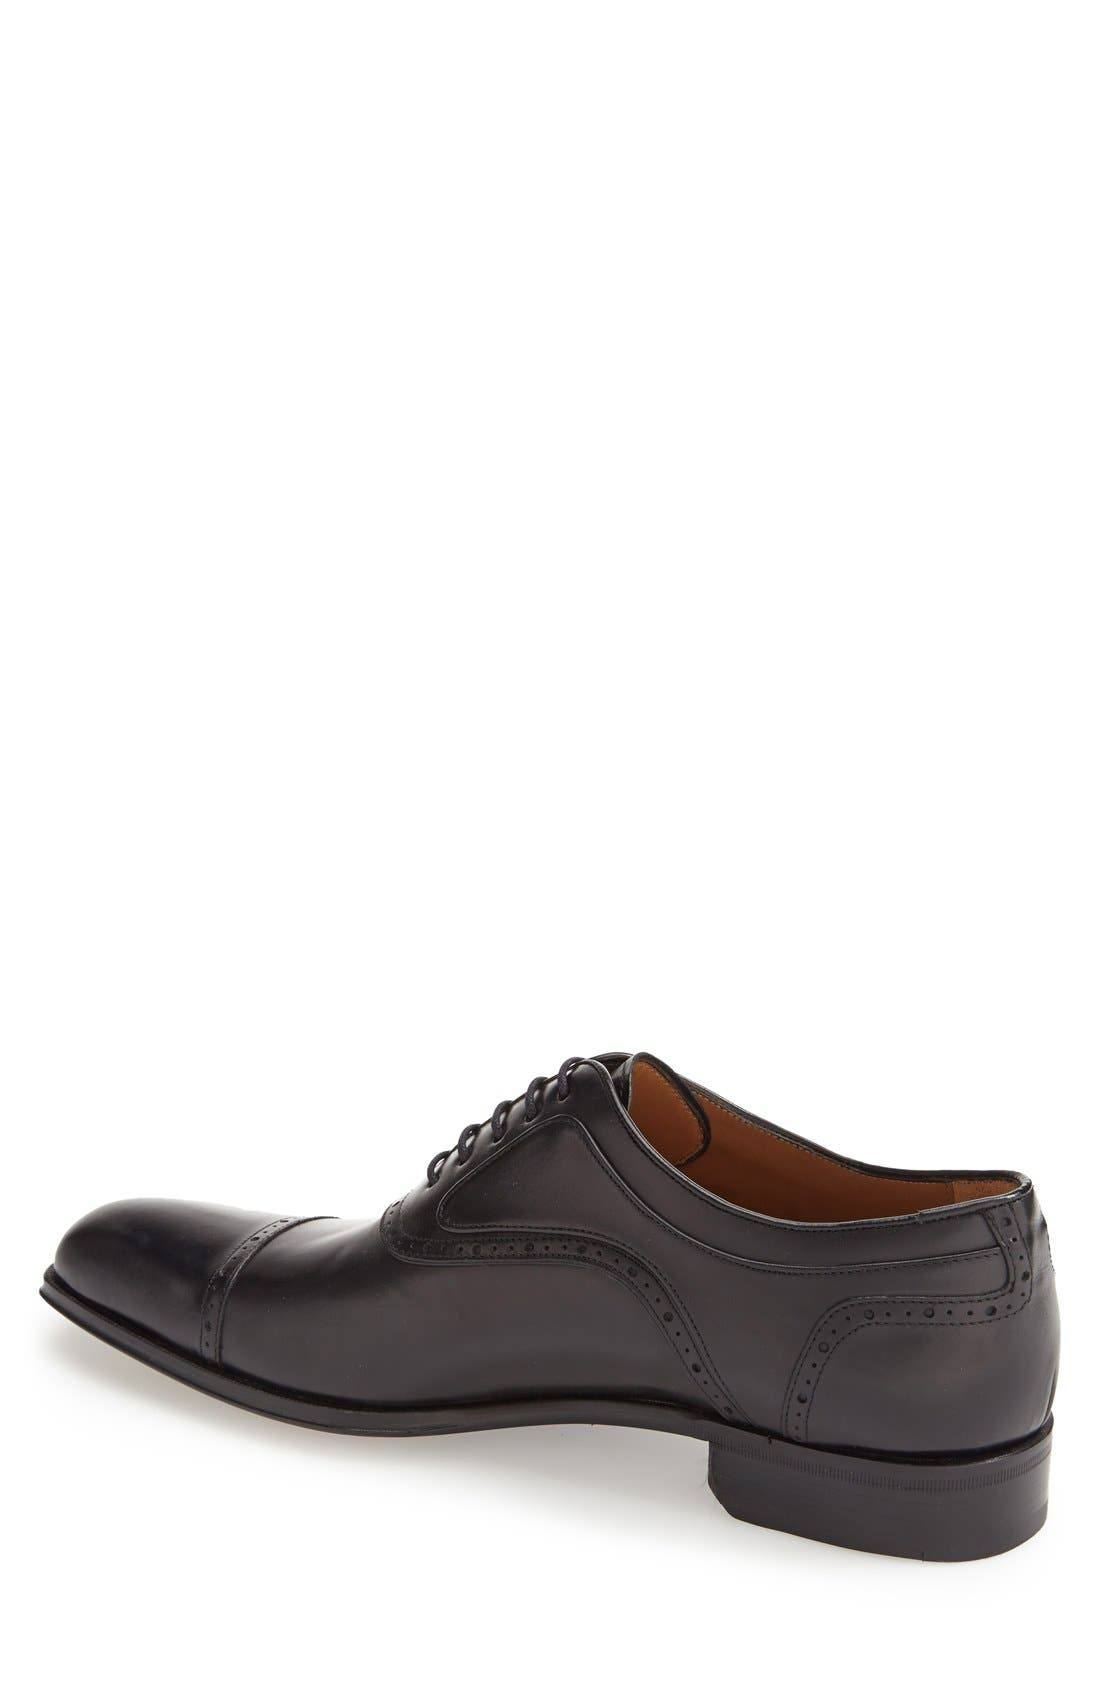 MEZLAN, 'March' Cap Toe Oxford, Alternate thumbnail 2, color, 001